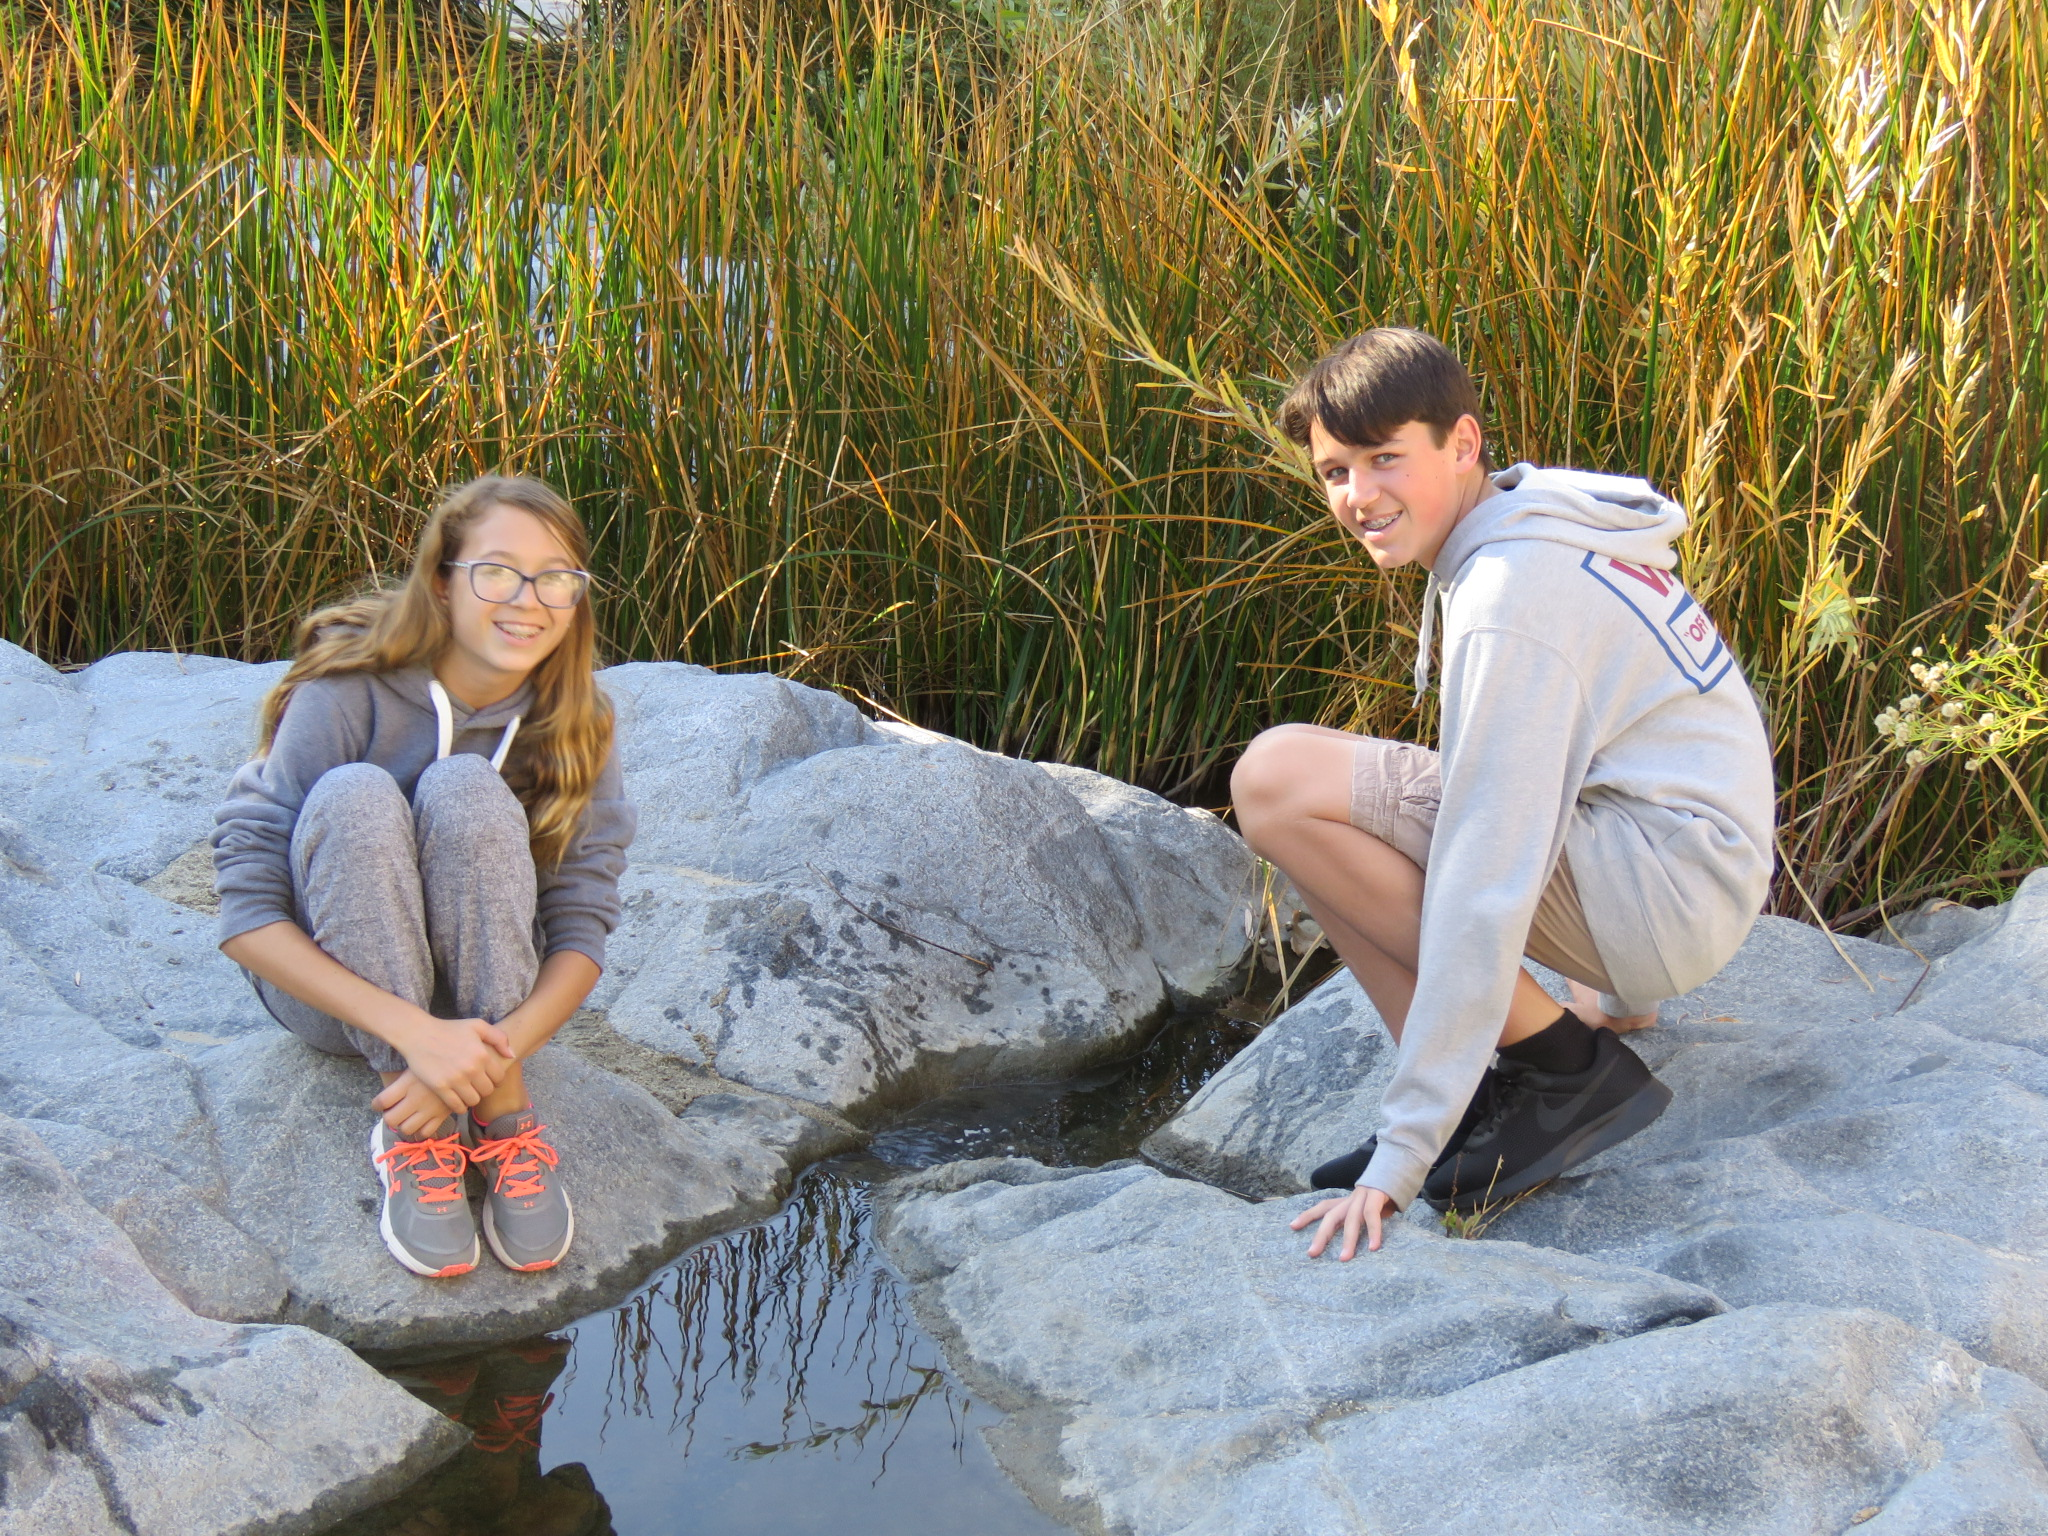 two young people kneeling on rocks near water